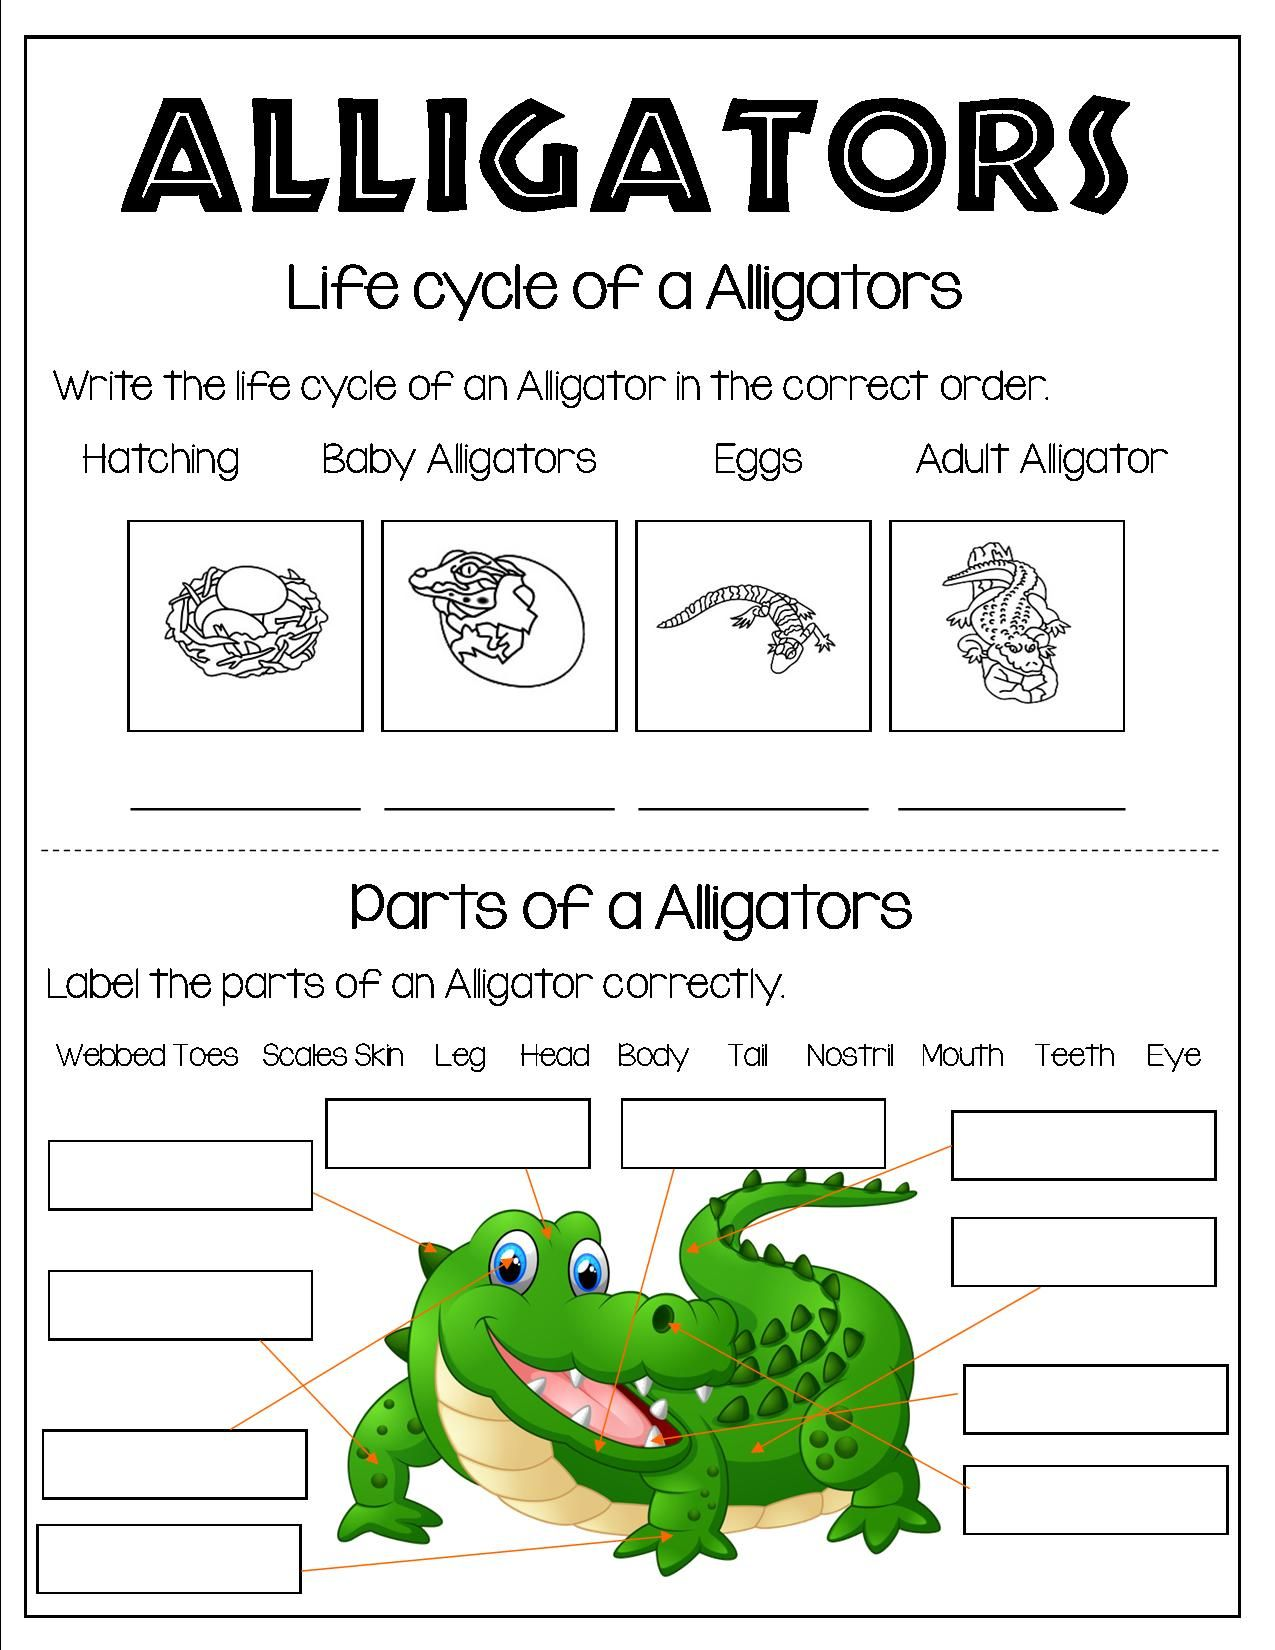 Grade 1 And Grade 2 Students Can Learn About Reptiles All